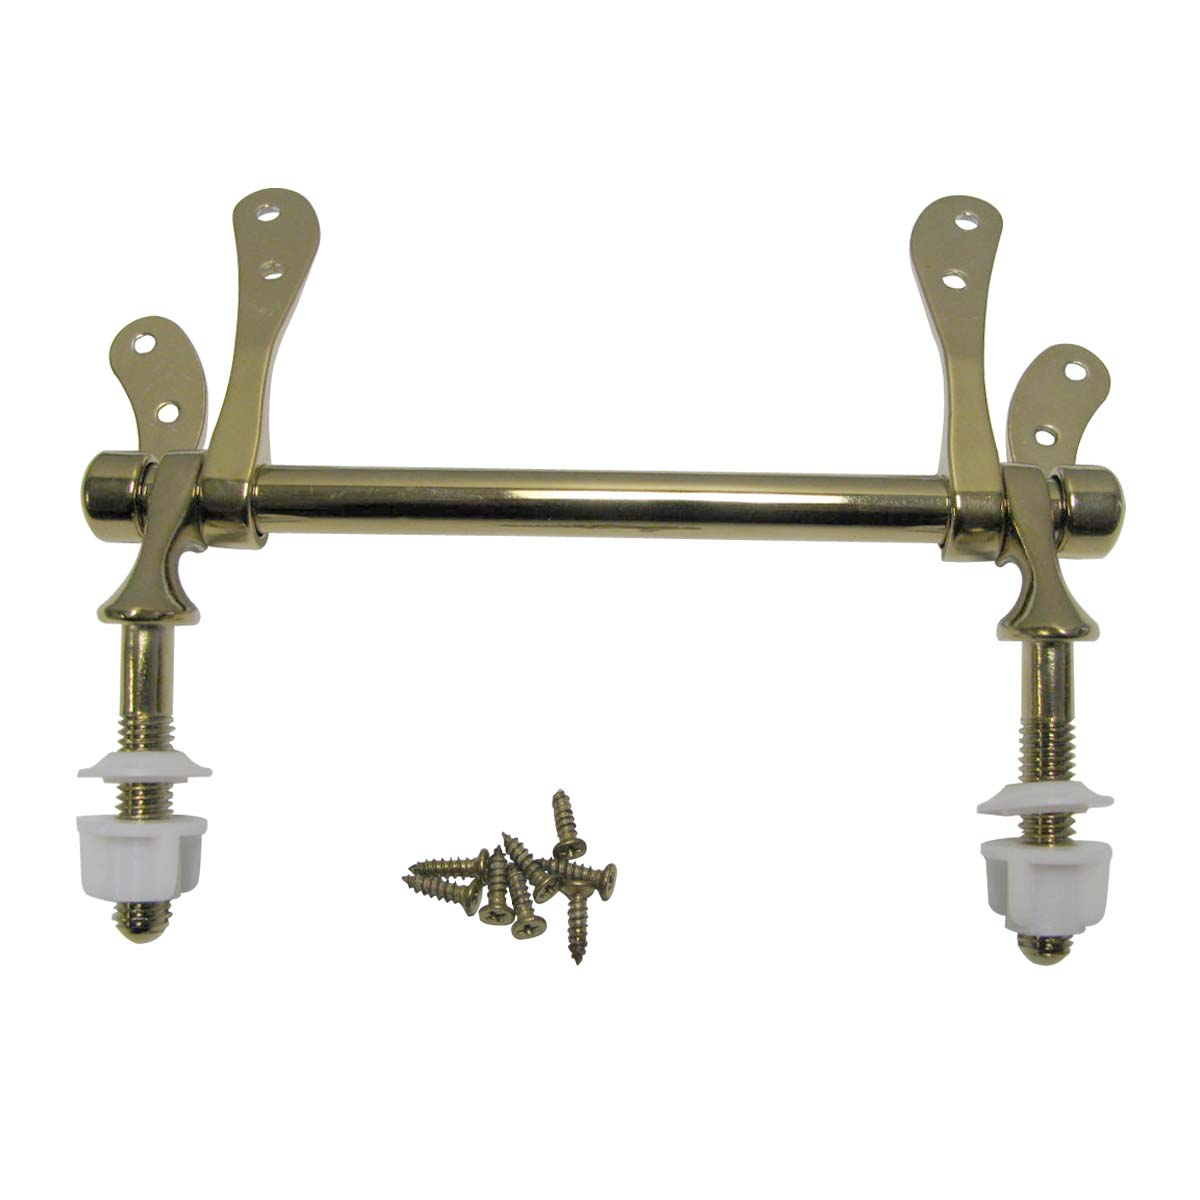 Gold PVD Brass Toilet Seat Hinge Replacement Hinge